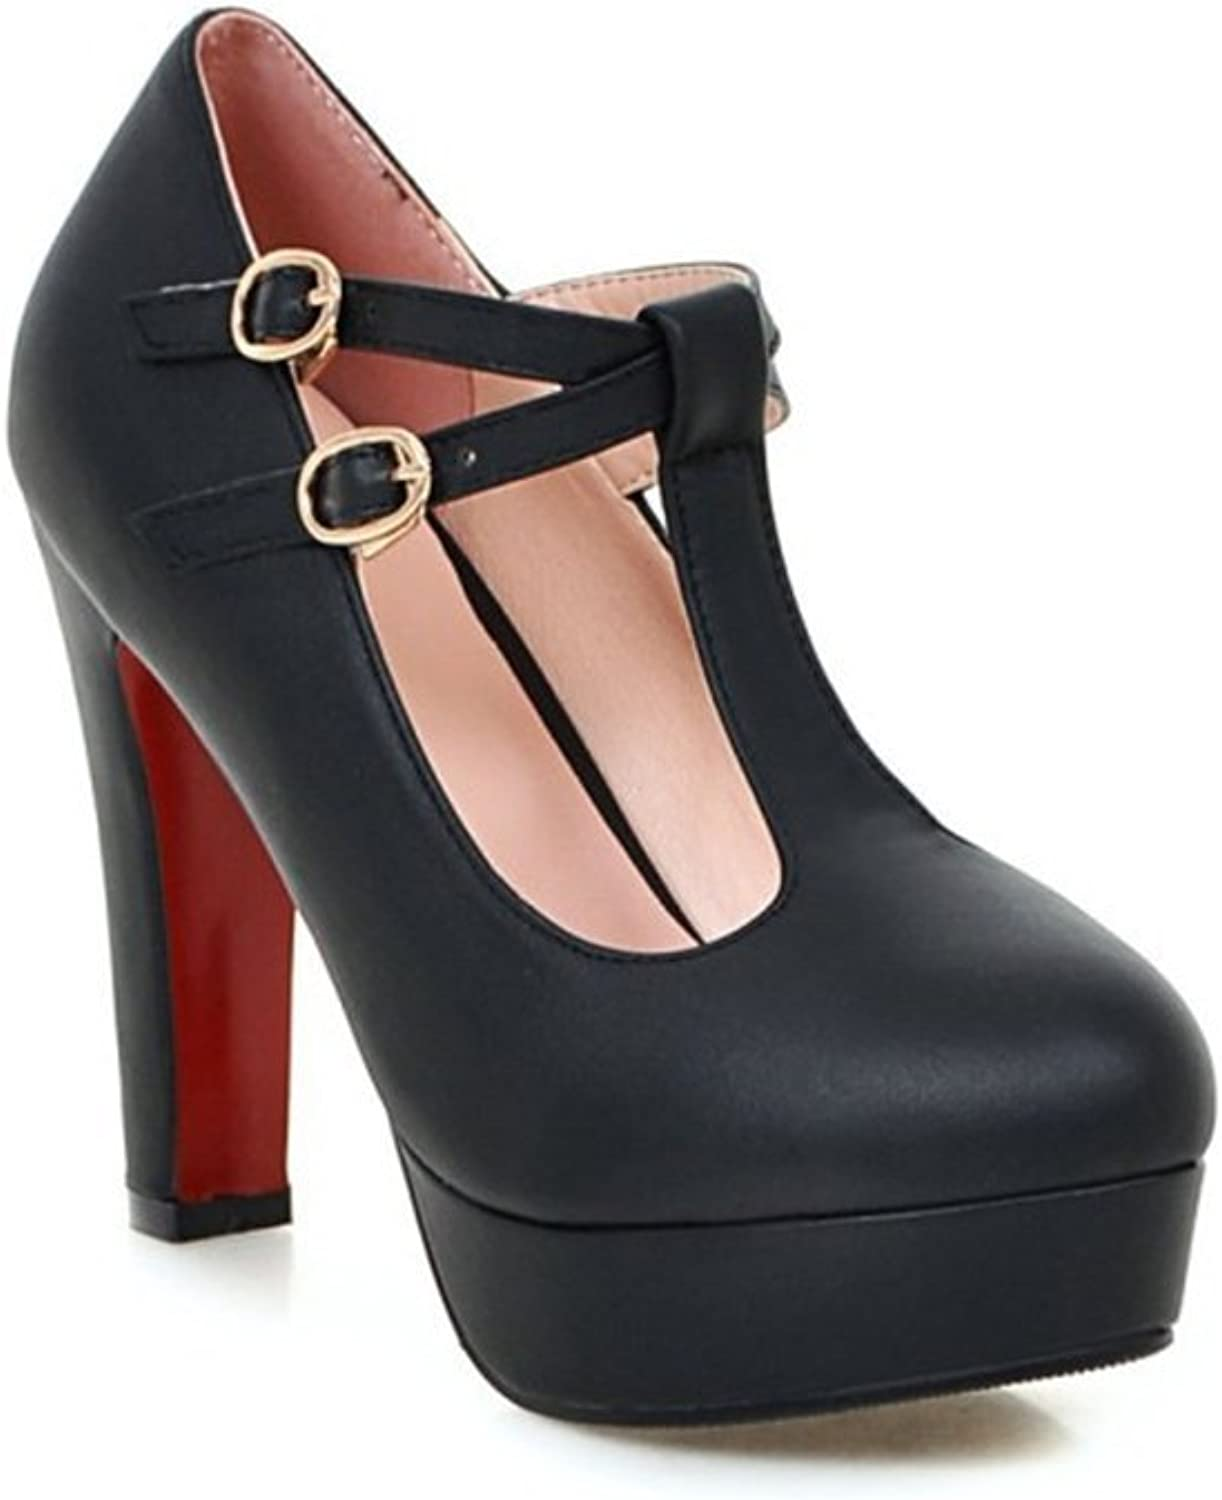 SUNNY Store Mary Jane Pumps Heels-Vintage Retro Round Toe shoes with Ankle Strap